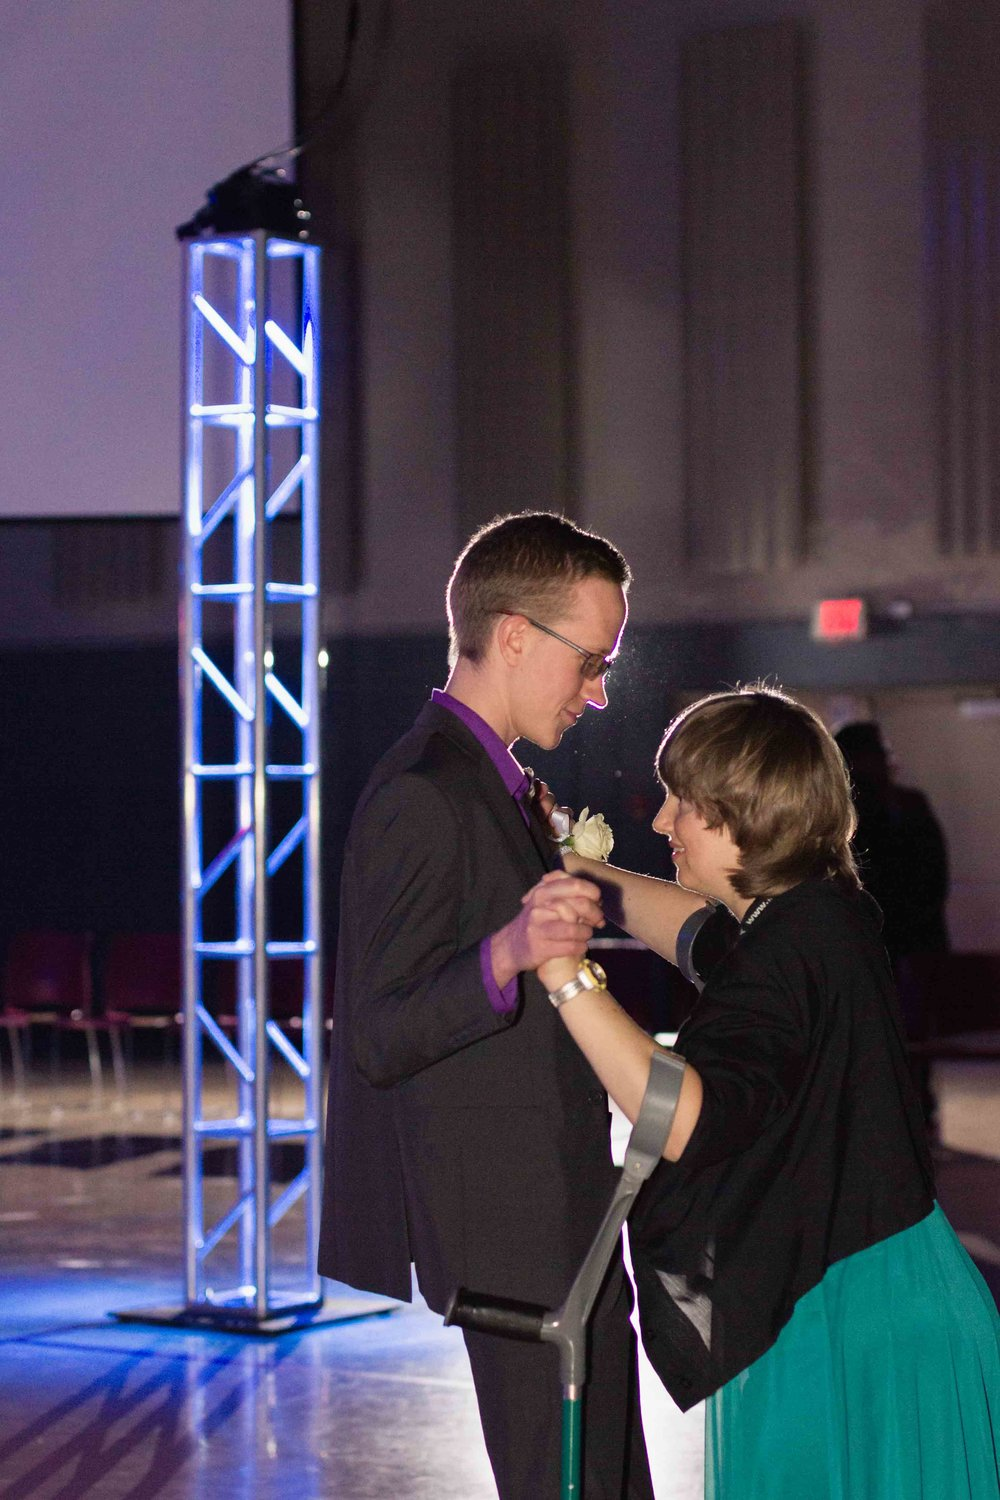 InBetweenDreamsWedding_NightToShine2018_HorizonChurch (163 of 514).jpg